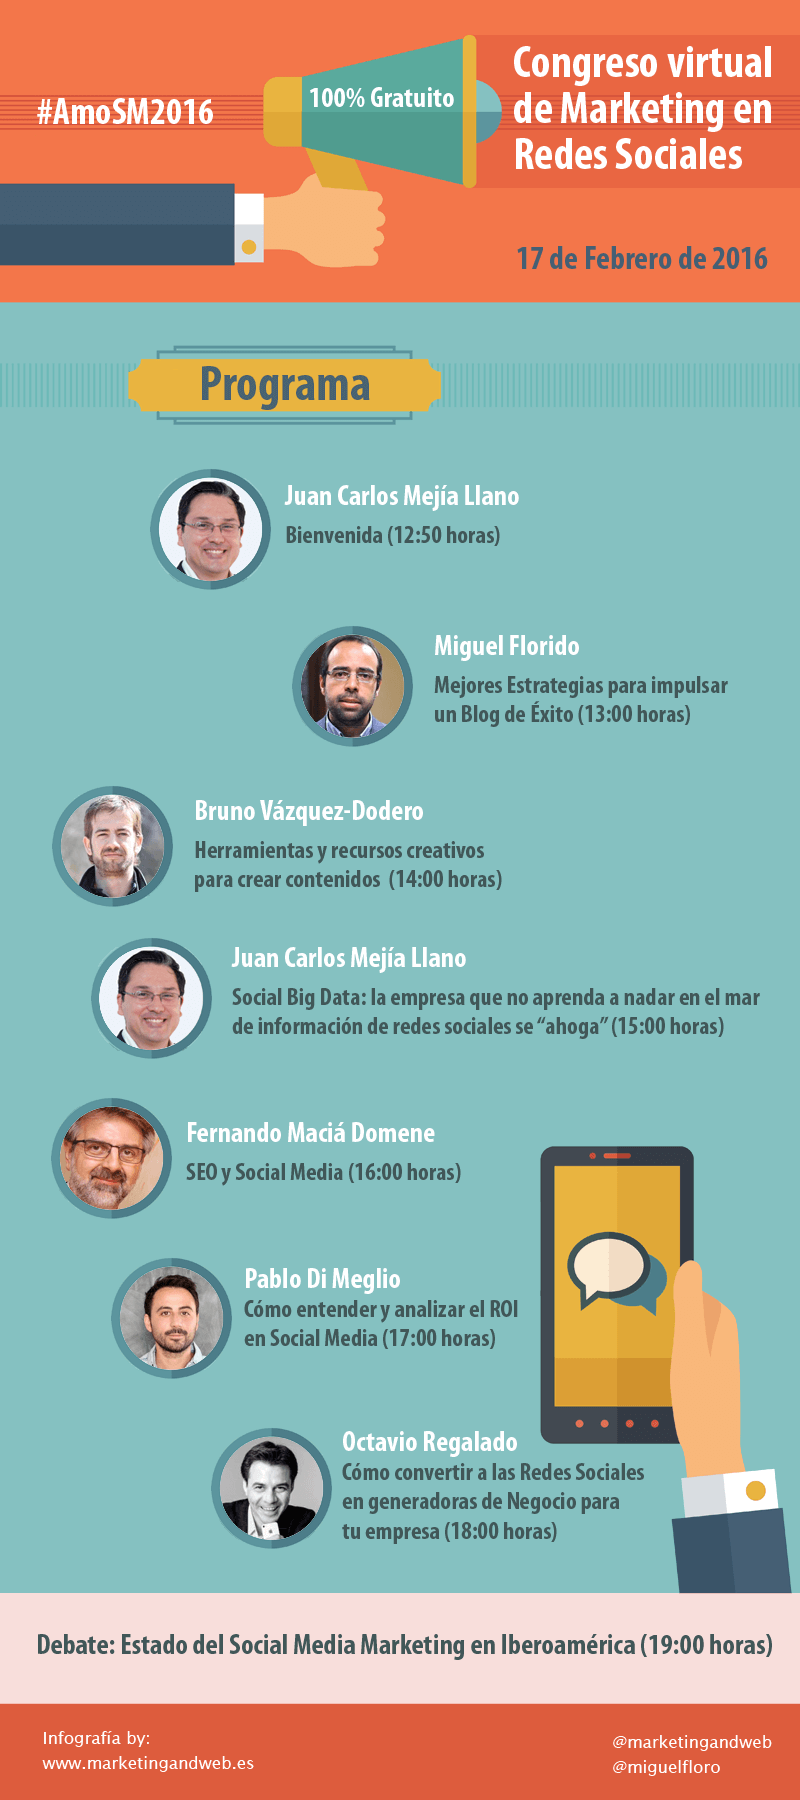 infografia-congreso-virtual-marketing-online-AmoSM2016